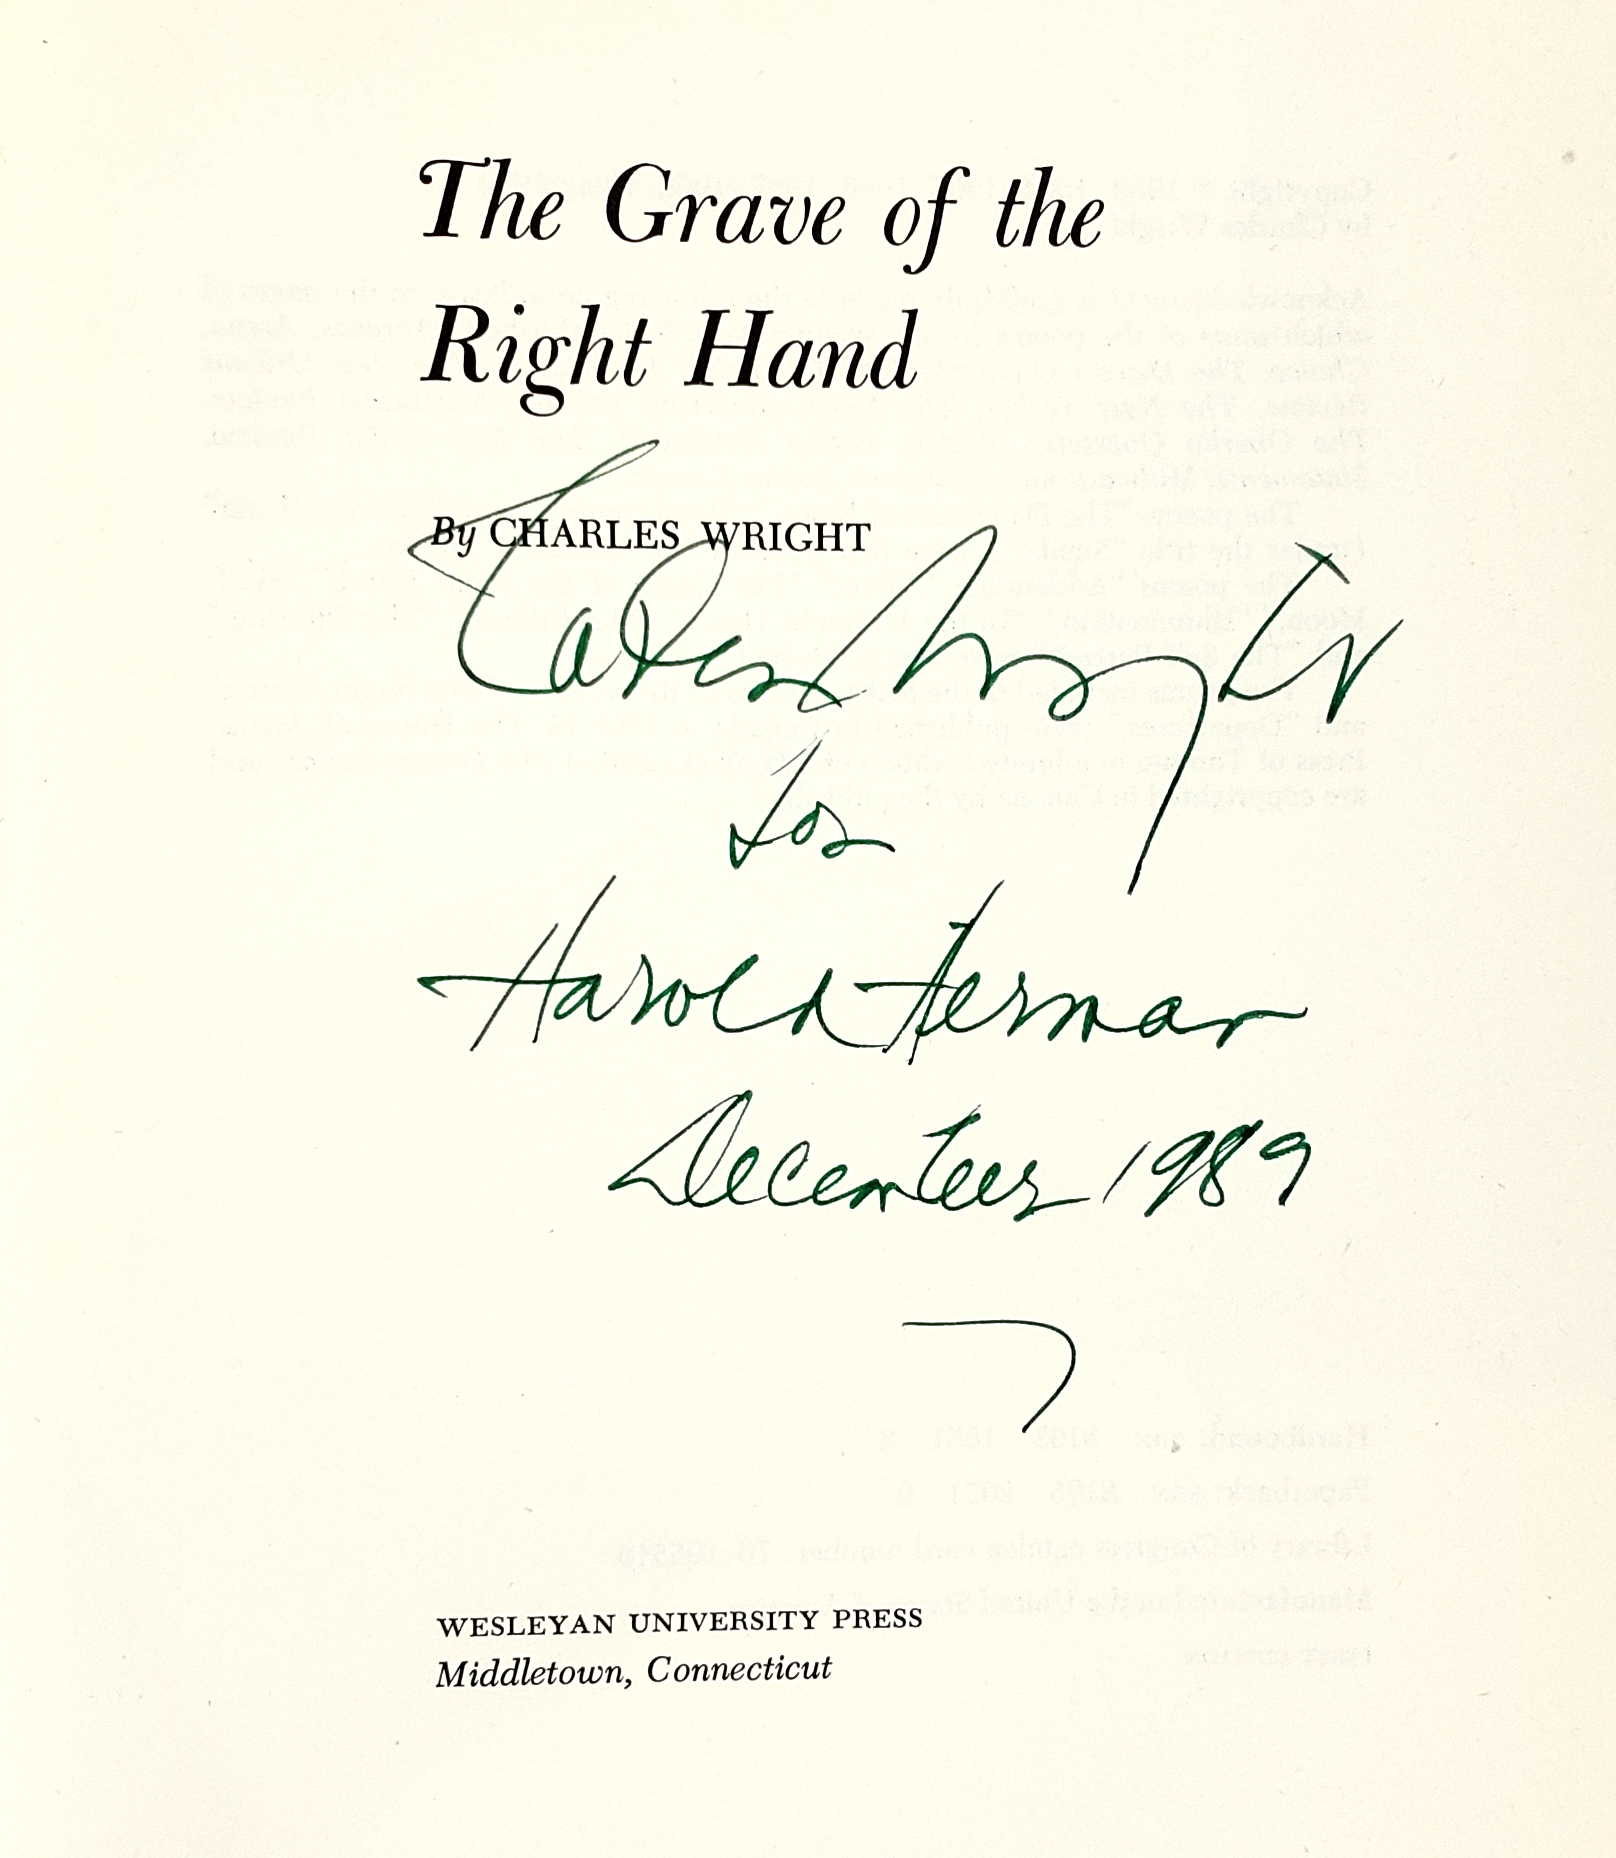 The Grave of the Right Hand by Charles Wright on Capitol Hill Books